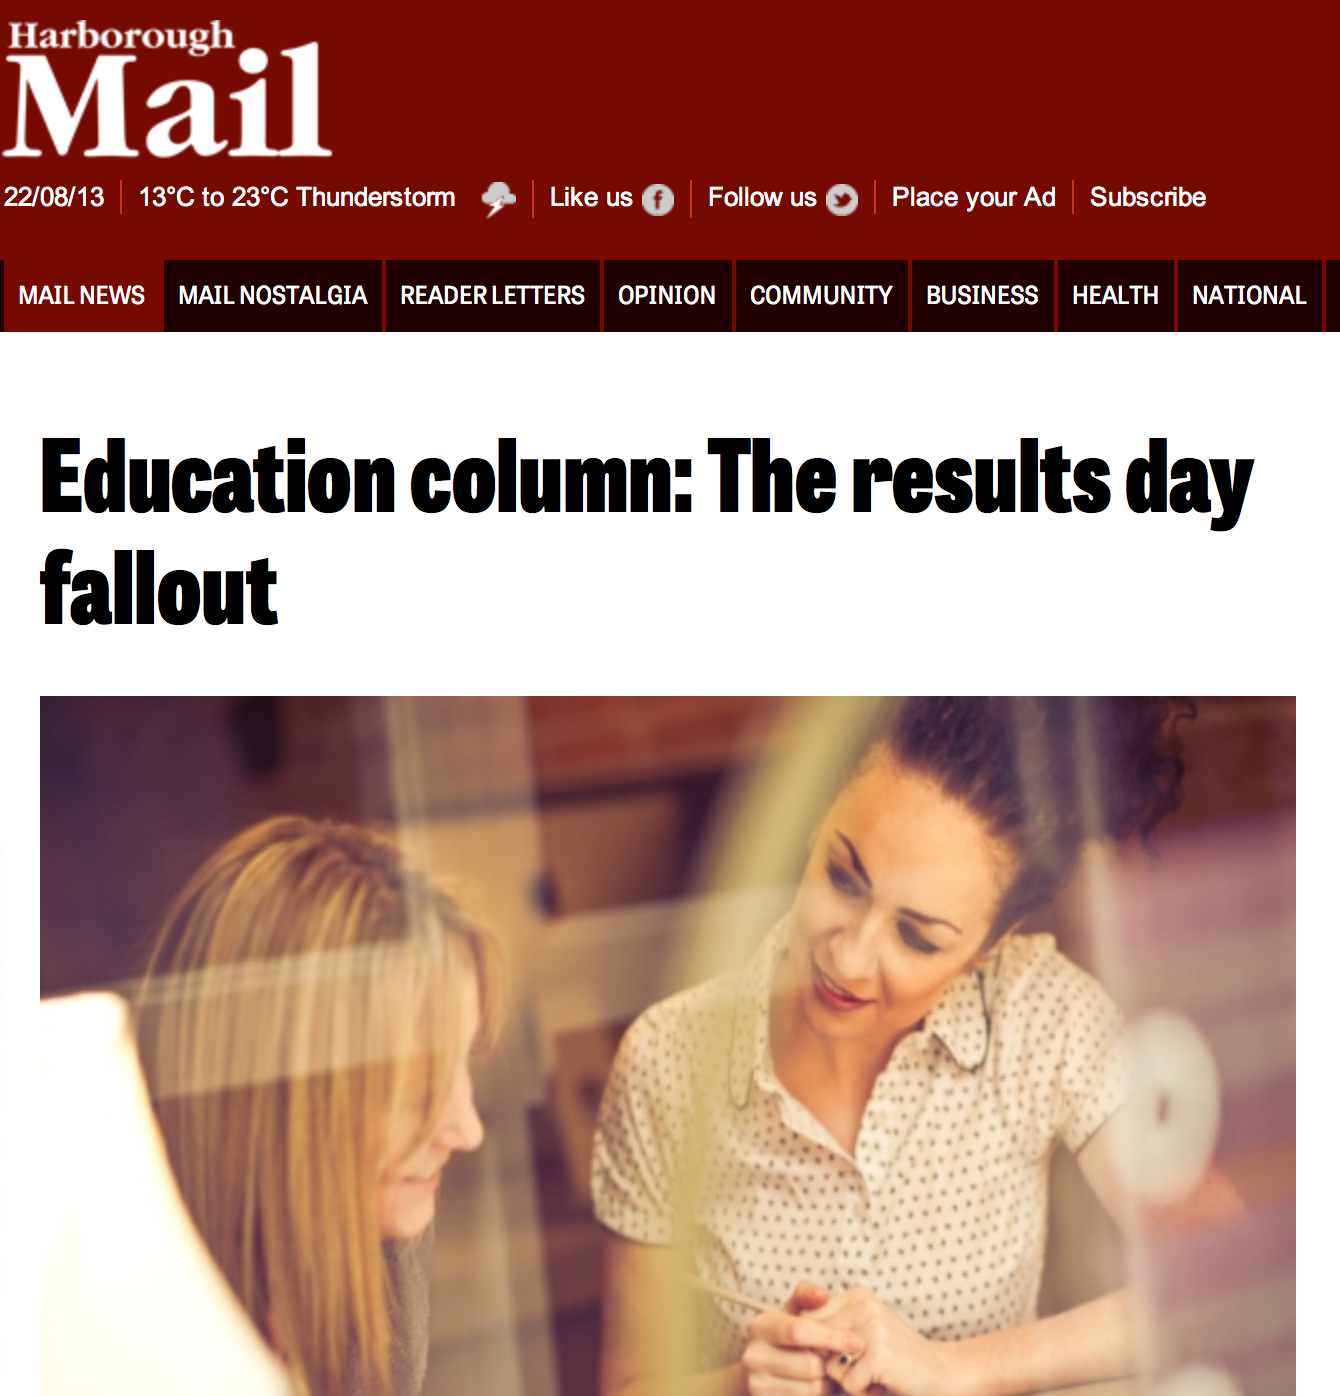 Harborough_Mail_Results_Fall_Out_article.jpg